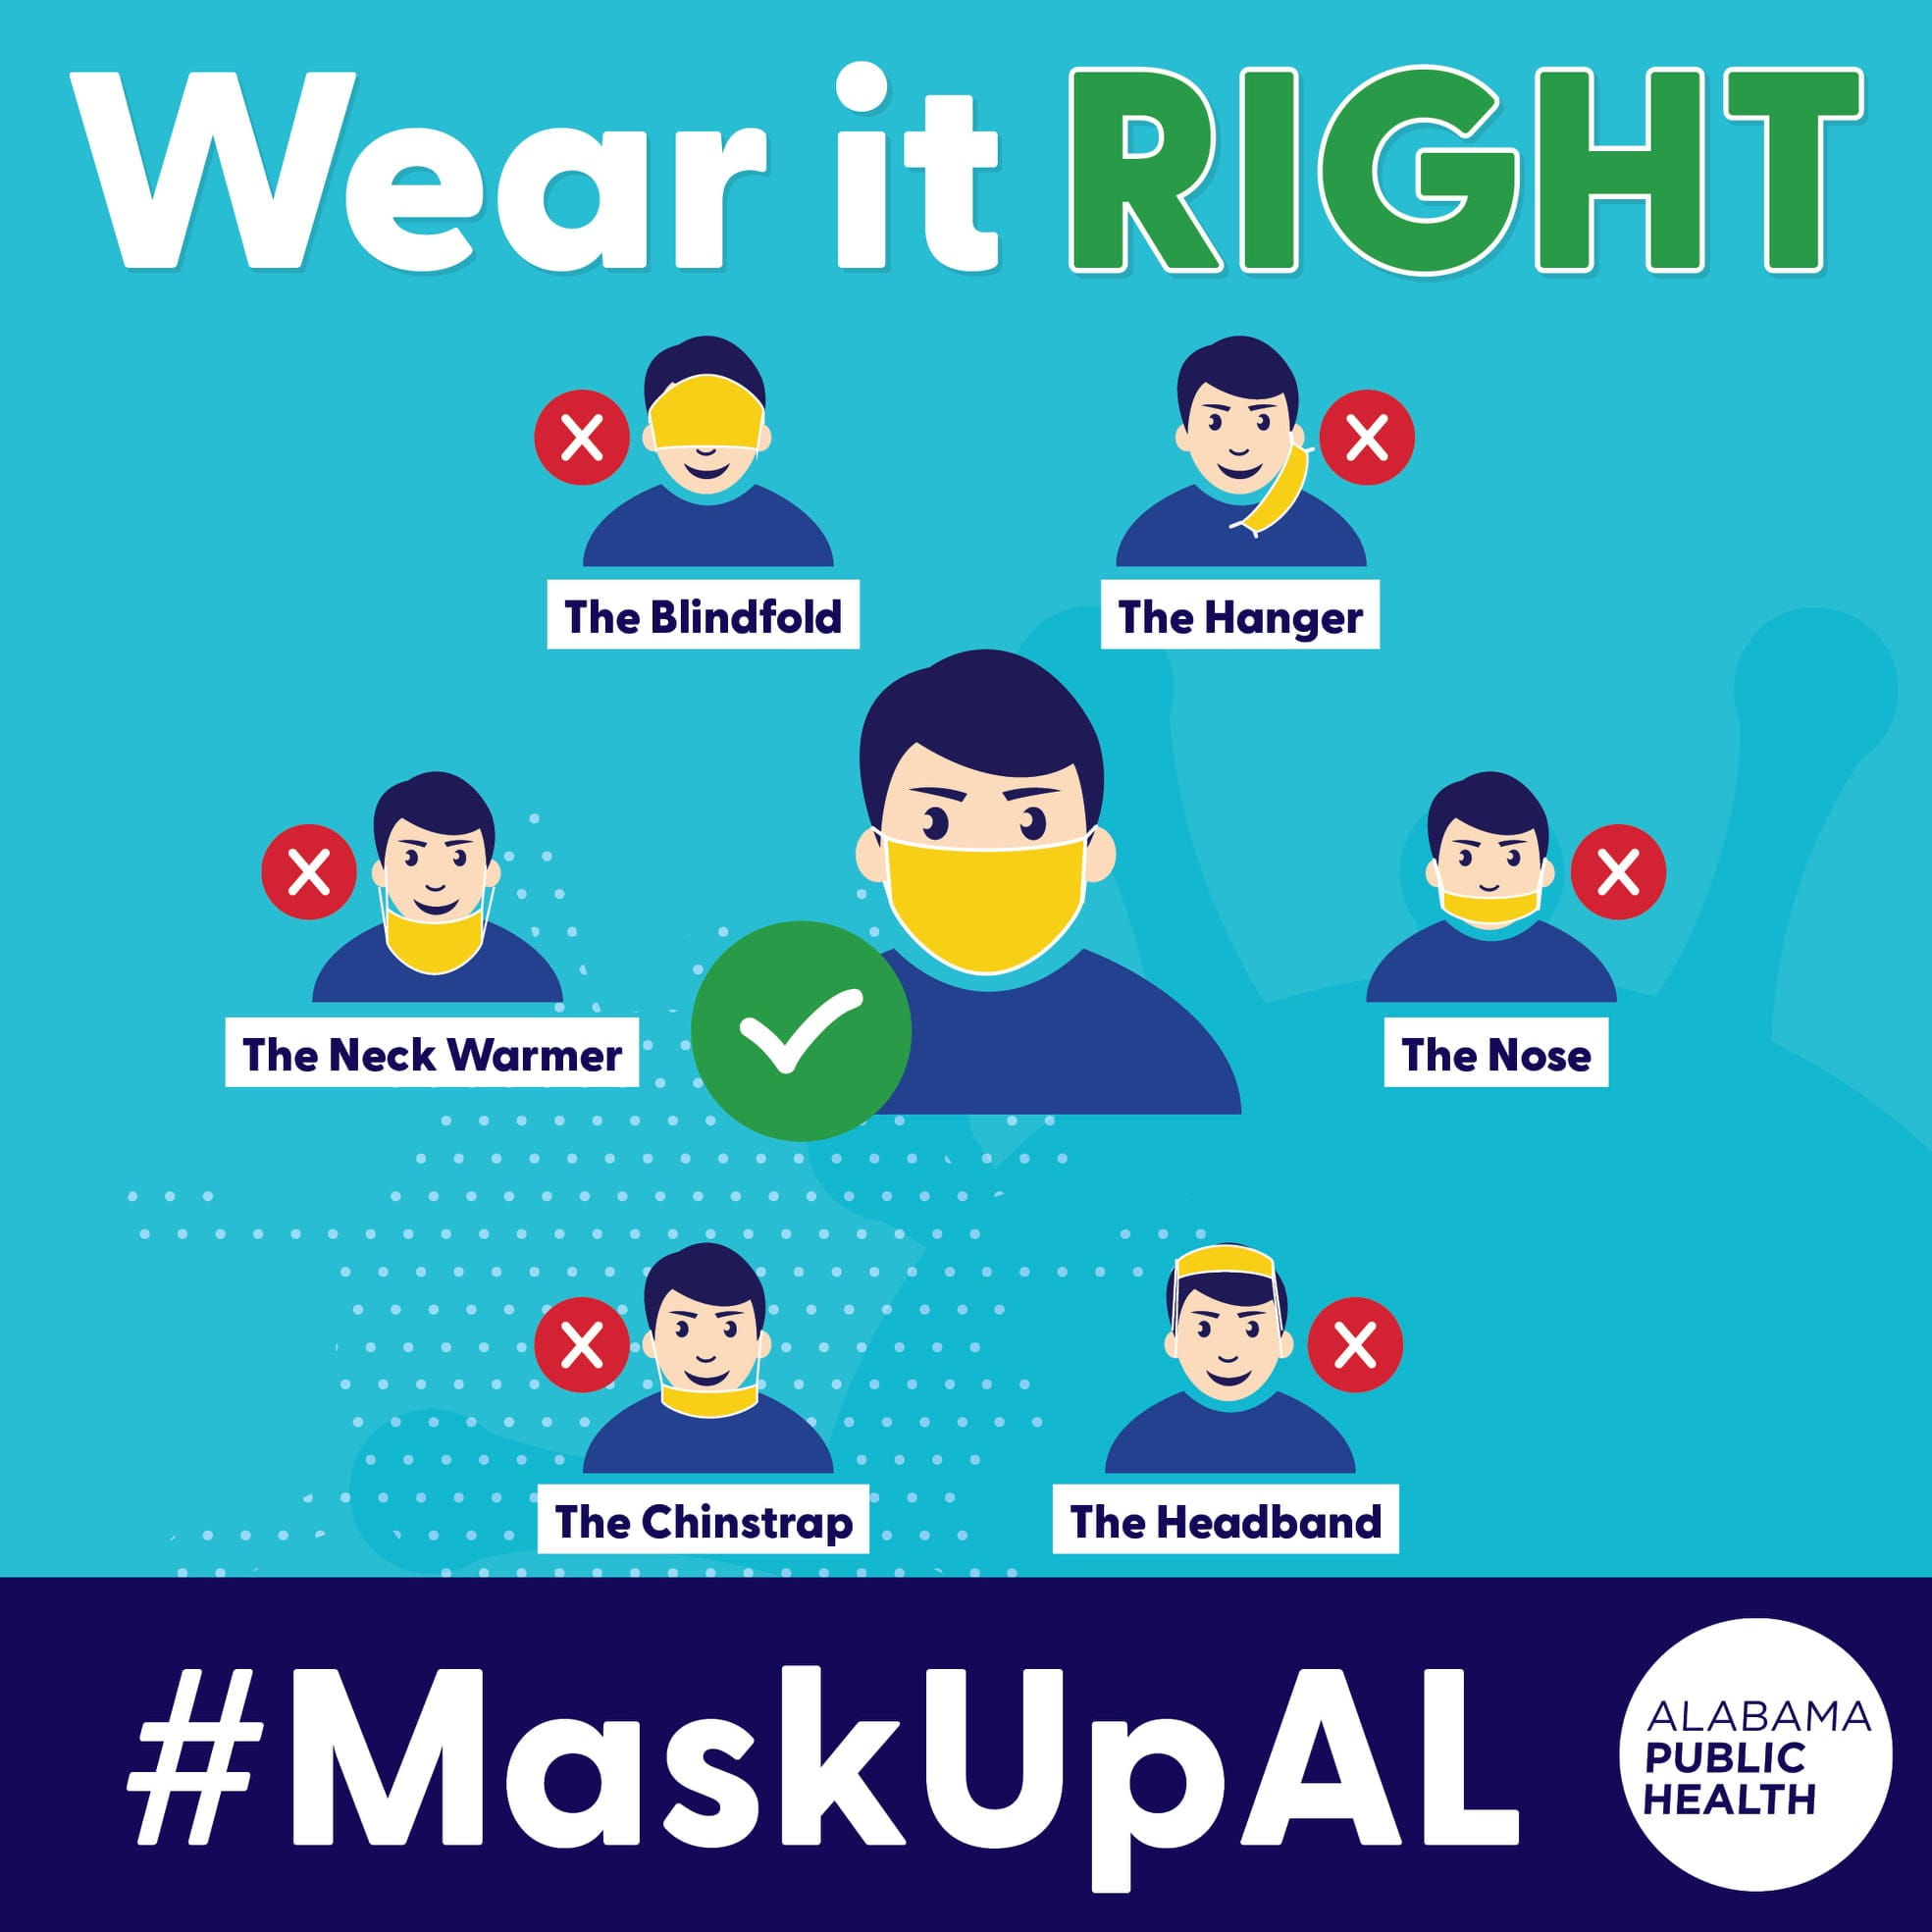 Wear it right. #MaskUpAL, Alabama Public Health